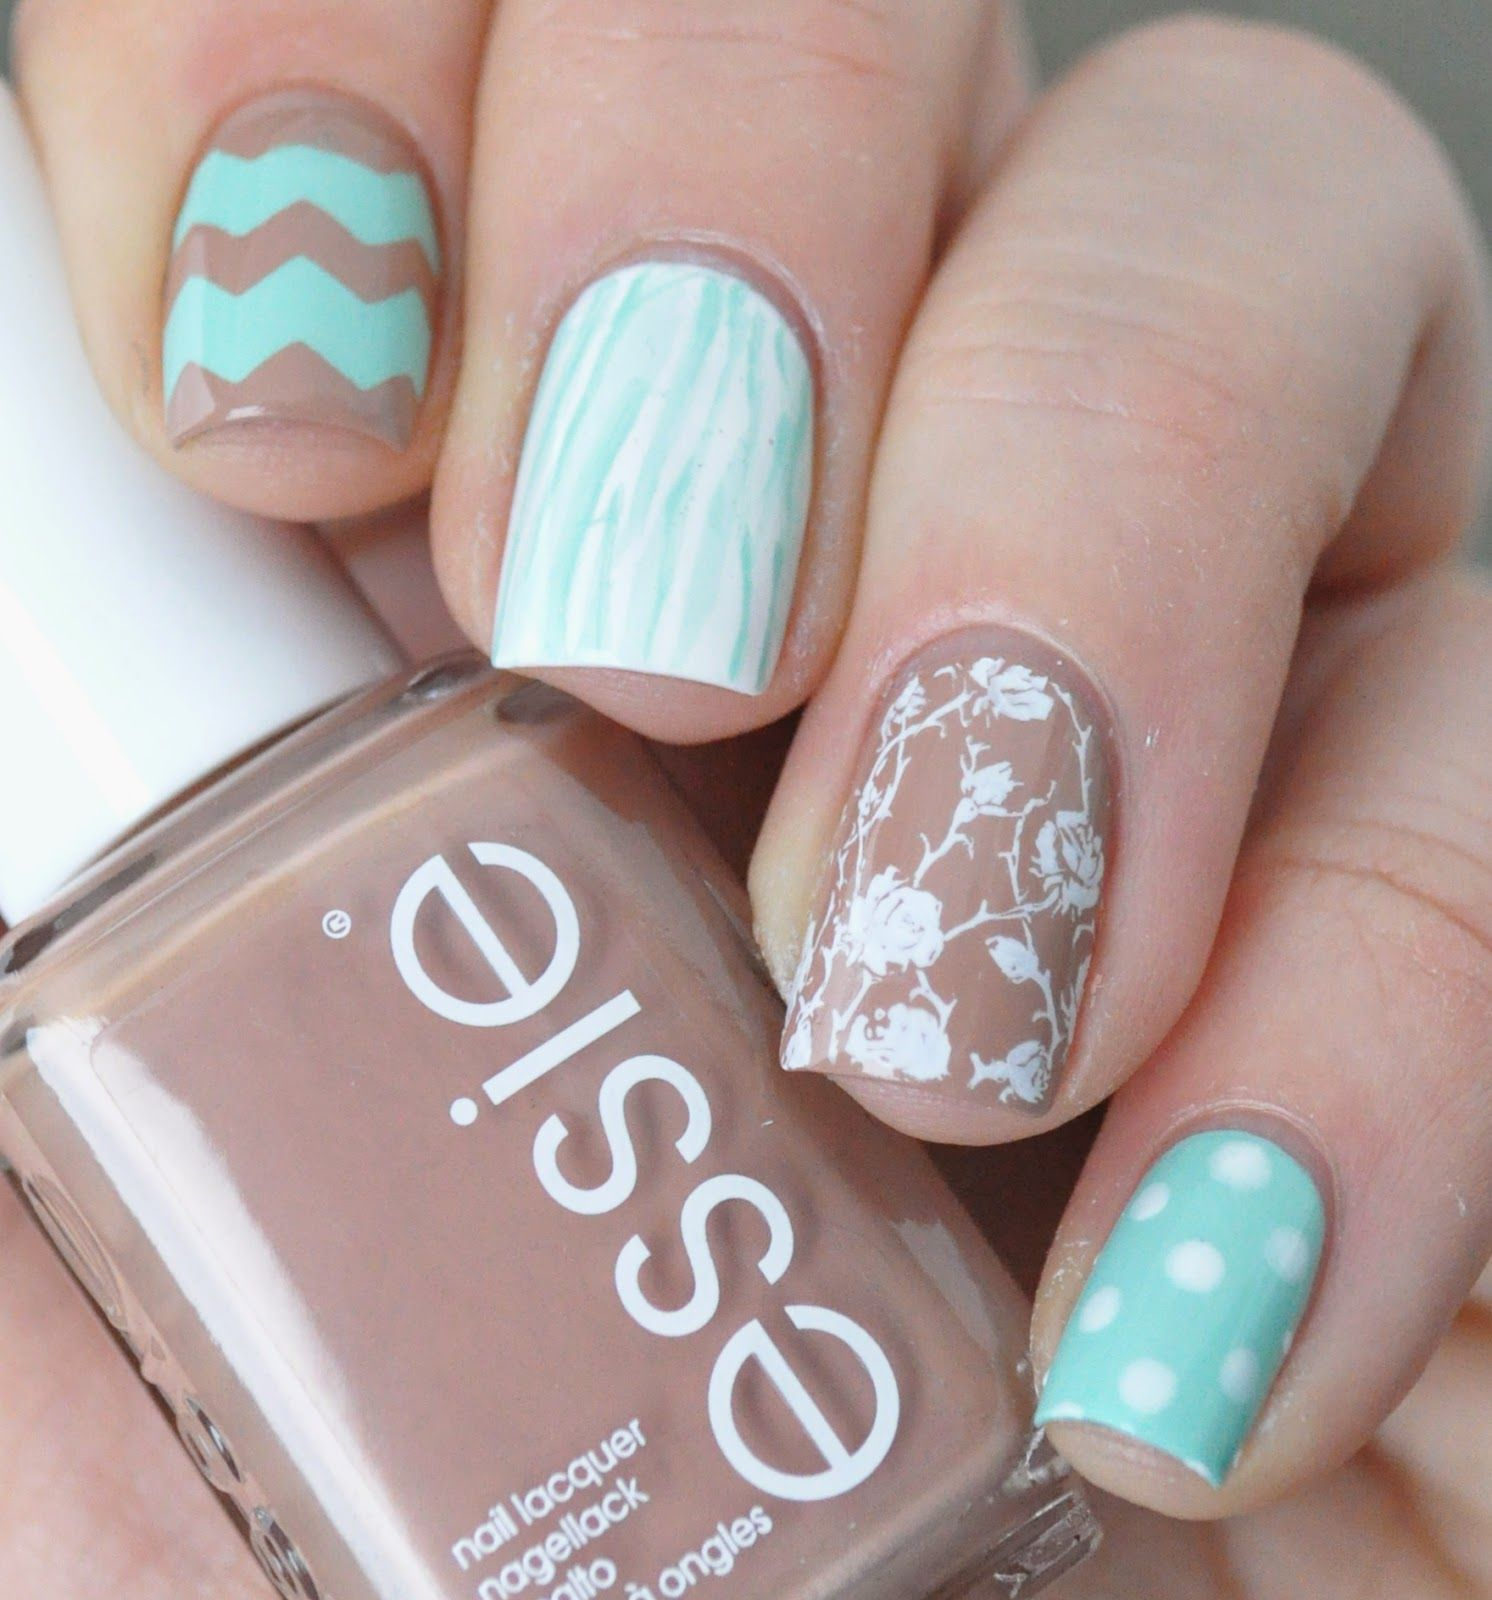 Essie Picked perfect // Mix and match